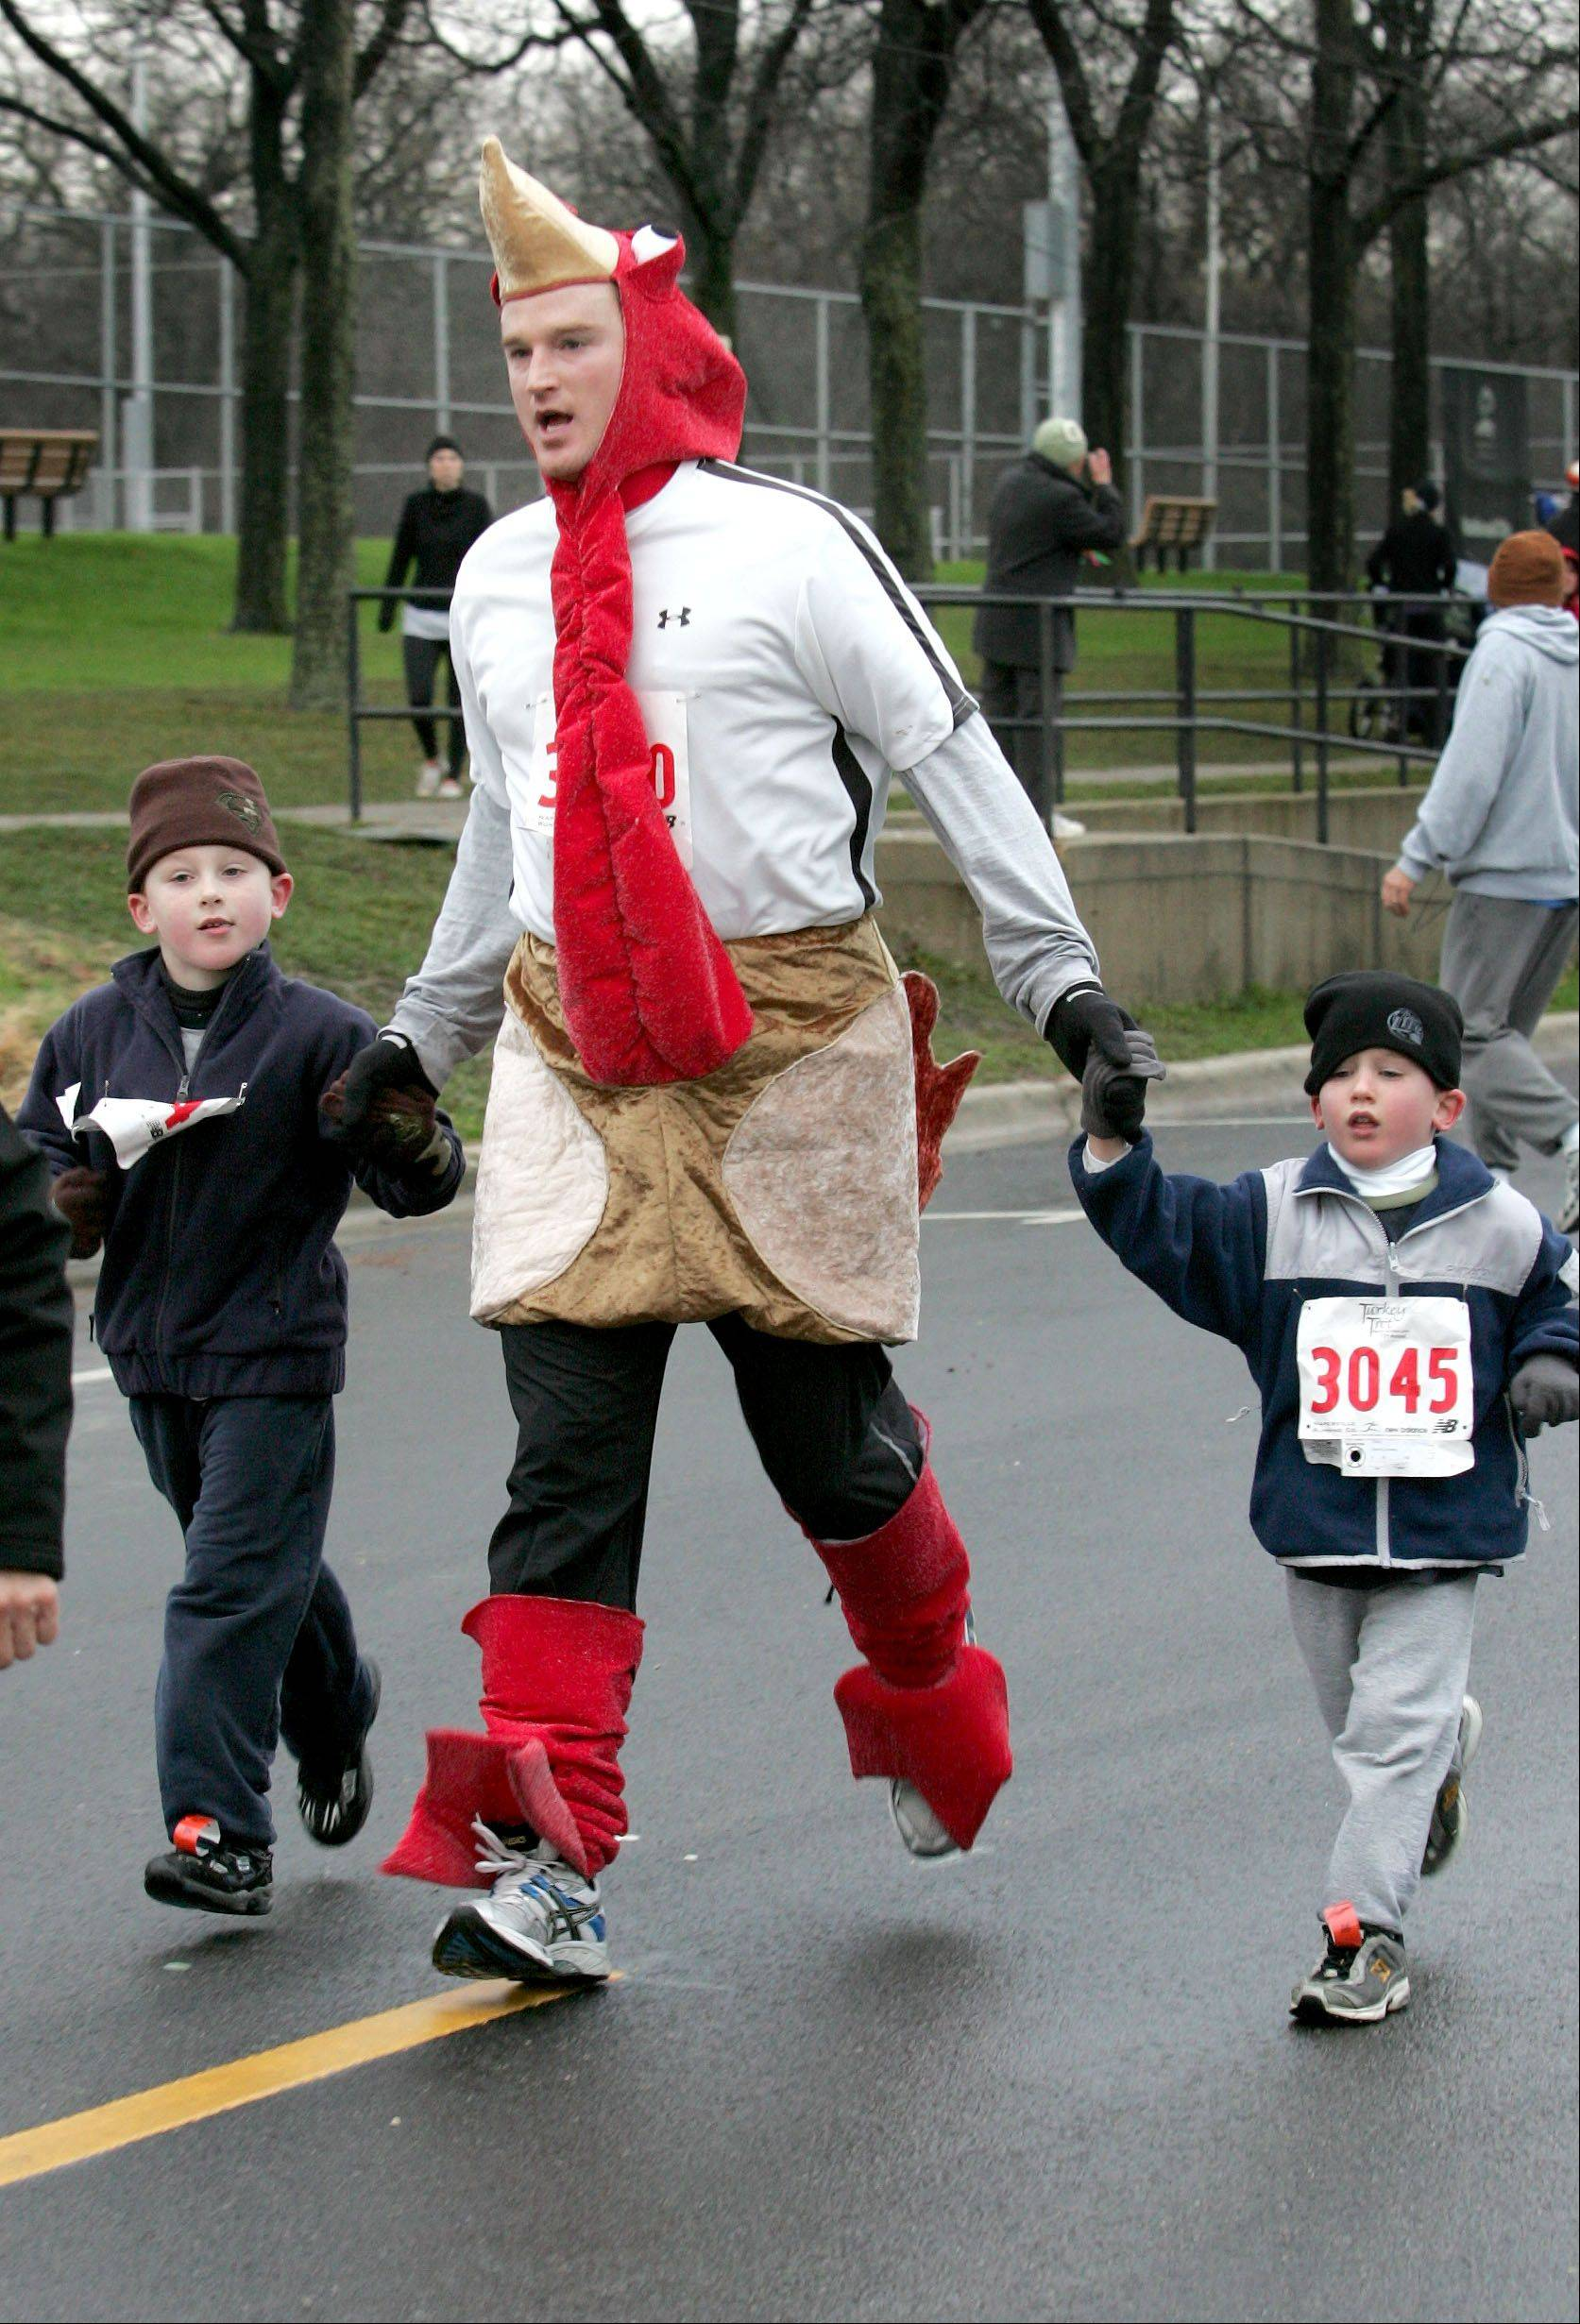 Dressing like a turkey and running with family members are all part of the tradition at the annual Naperville Noon Lions Turkey Trot 5K. The 16th annual race steps off at 8 a.m. Thursday from Hillside Avenue behind Naperville Central High School.